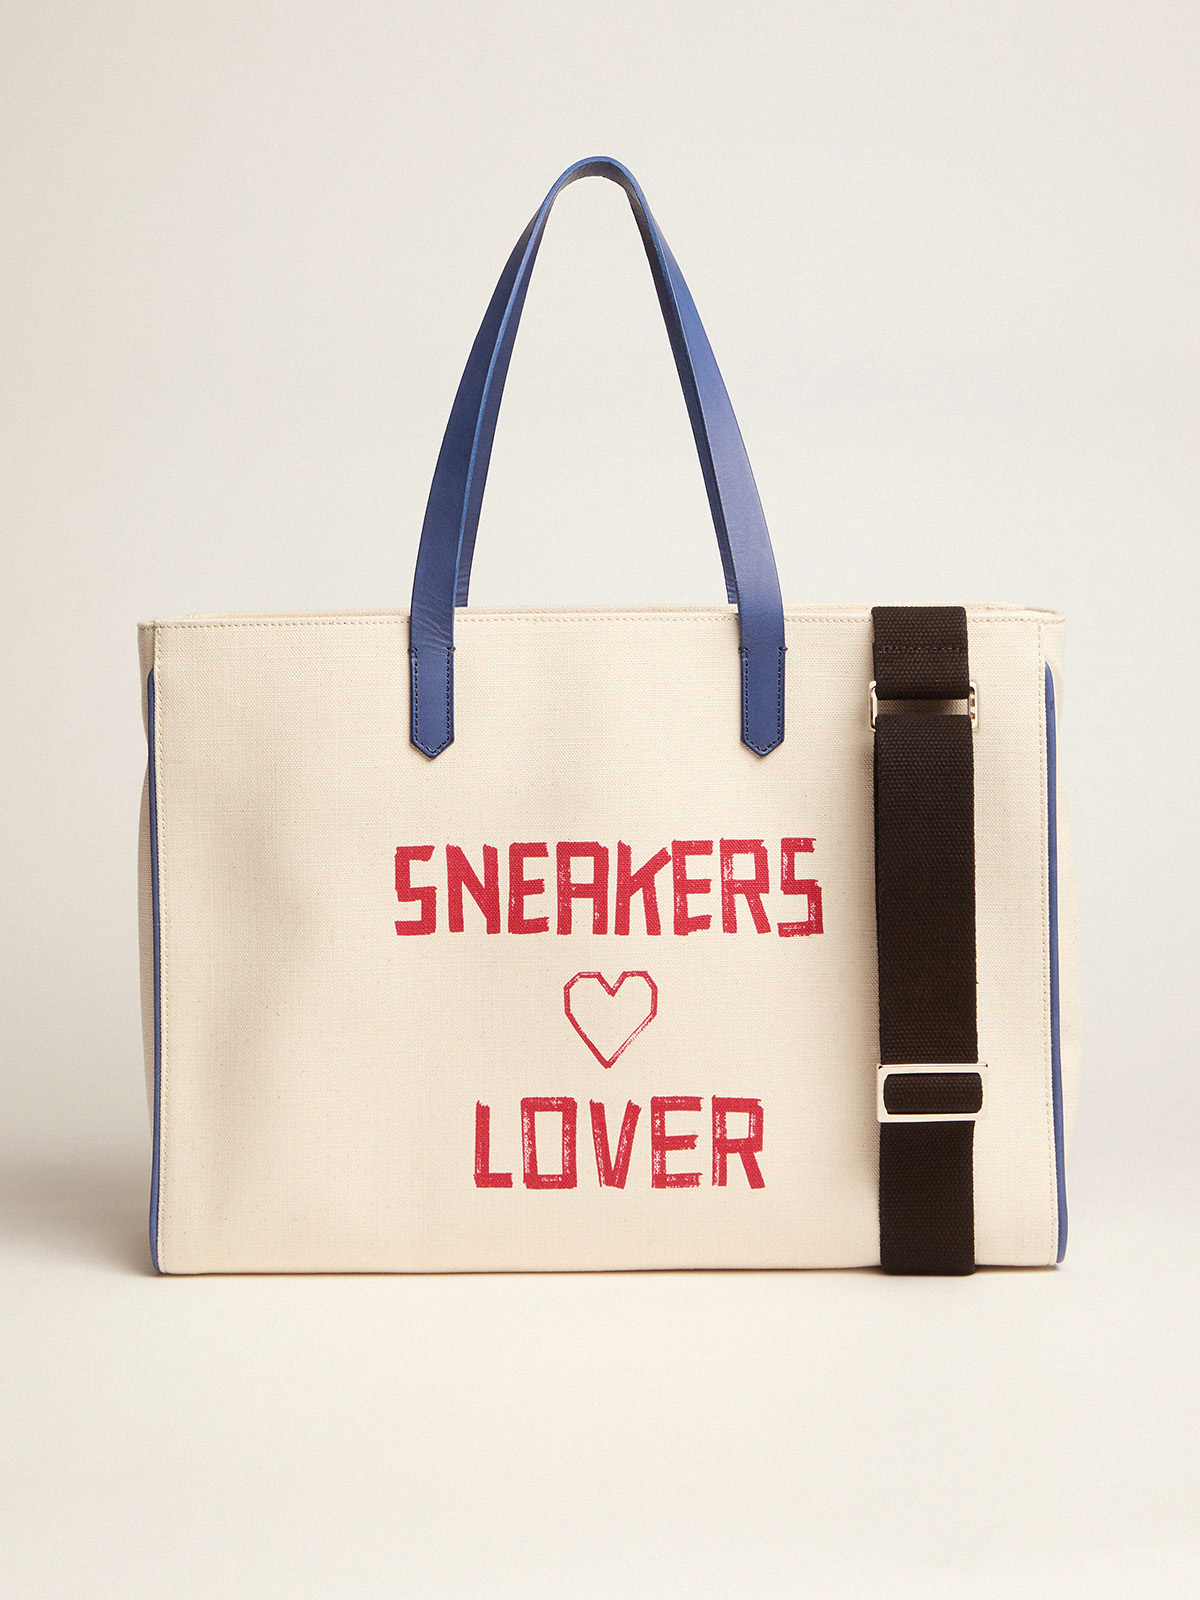 Golden Goose - California East-West bag with red Sneakers Lover print in